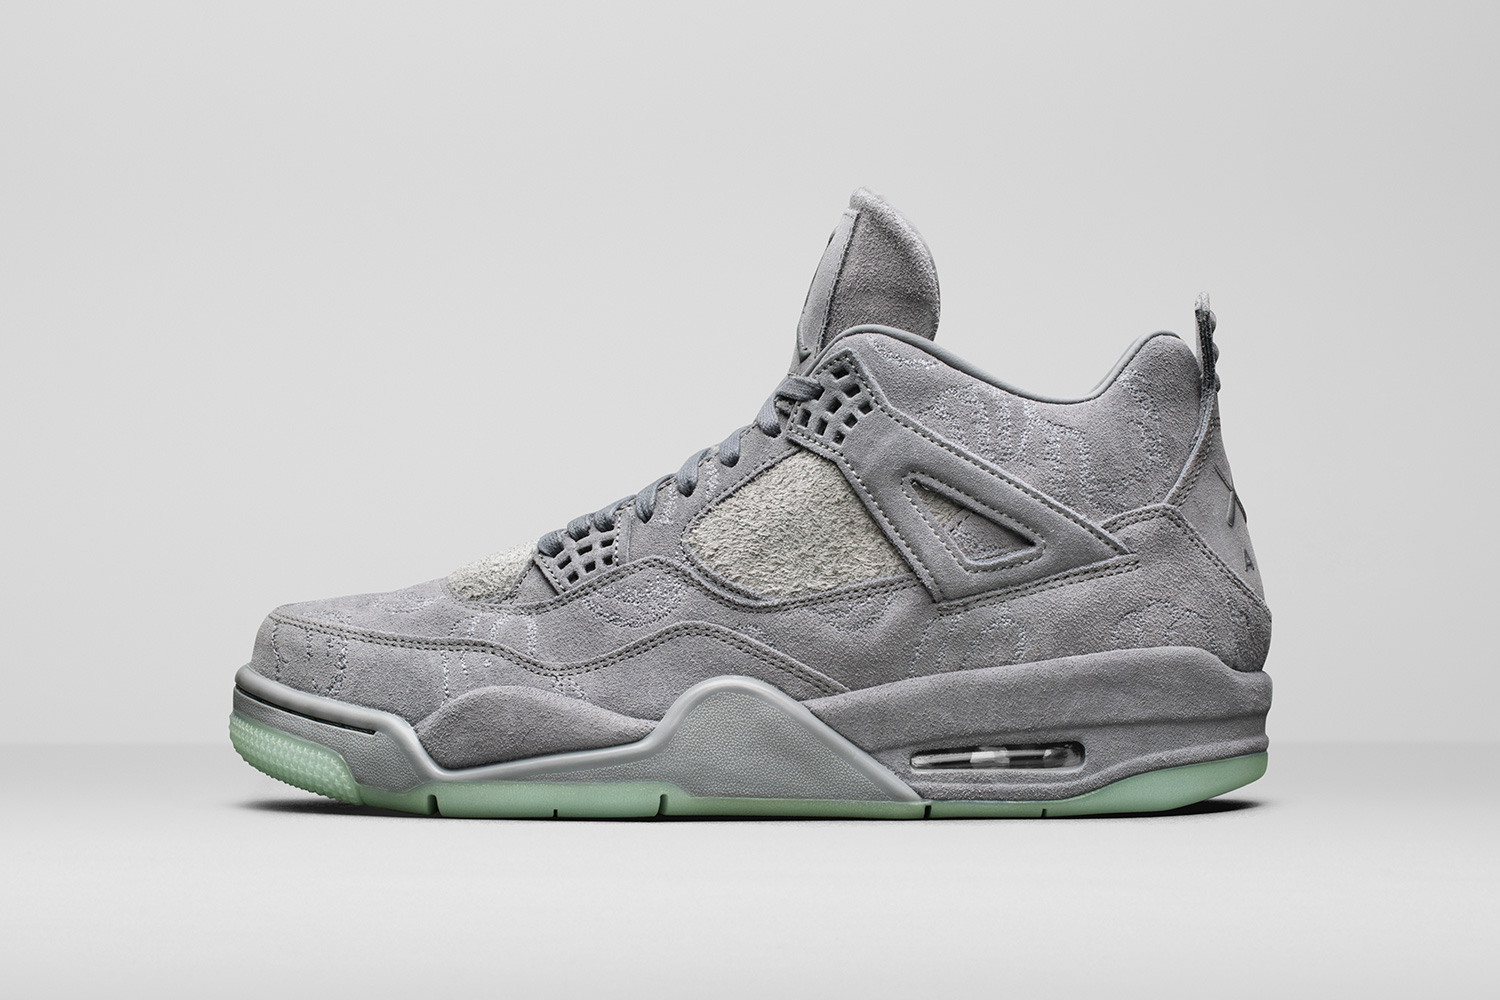 kaws-air-jordan-4-official-images-03